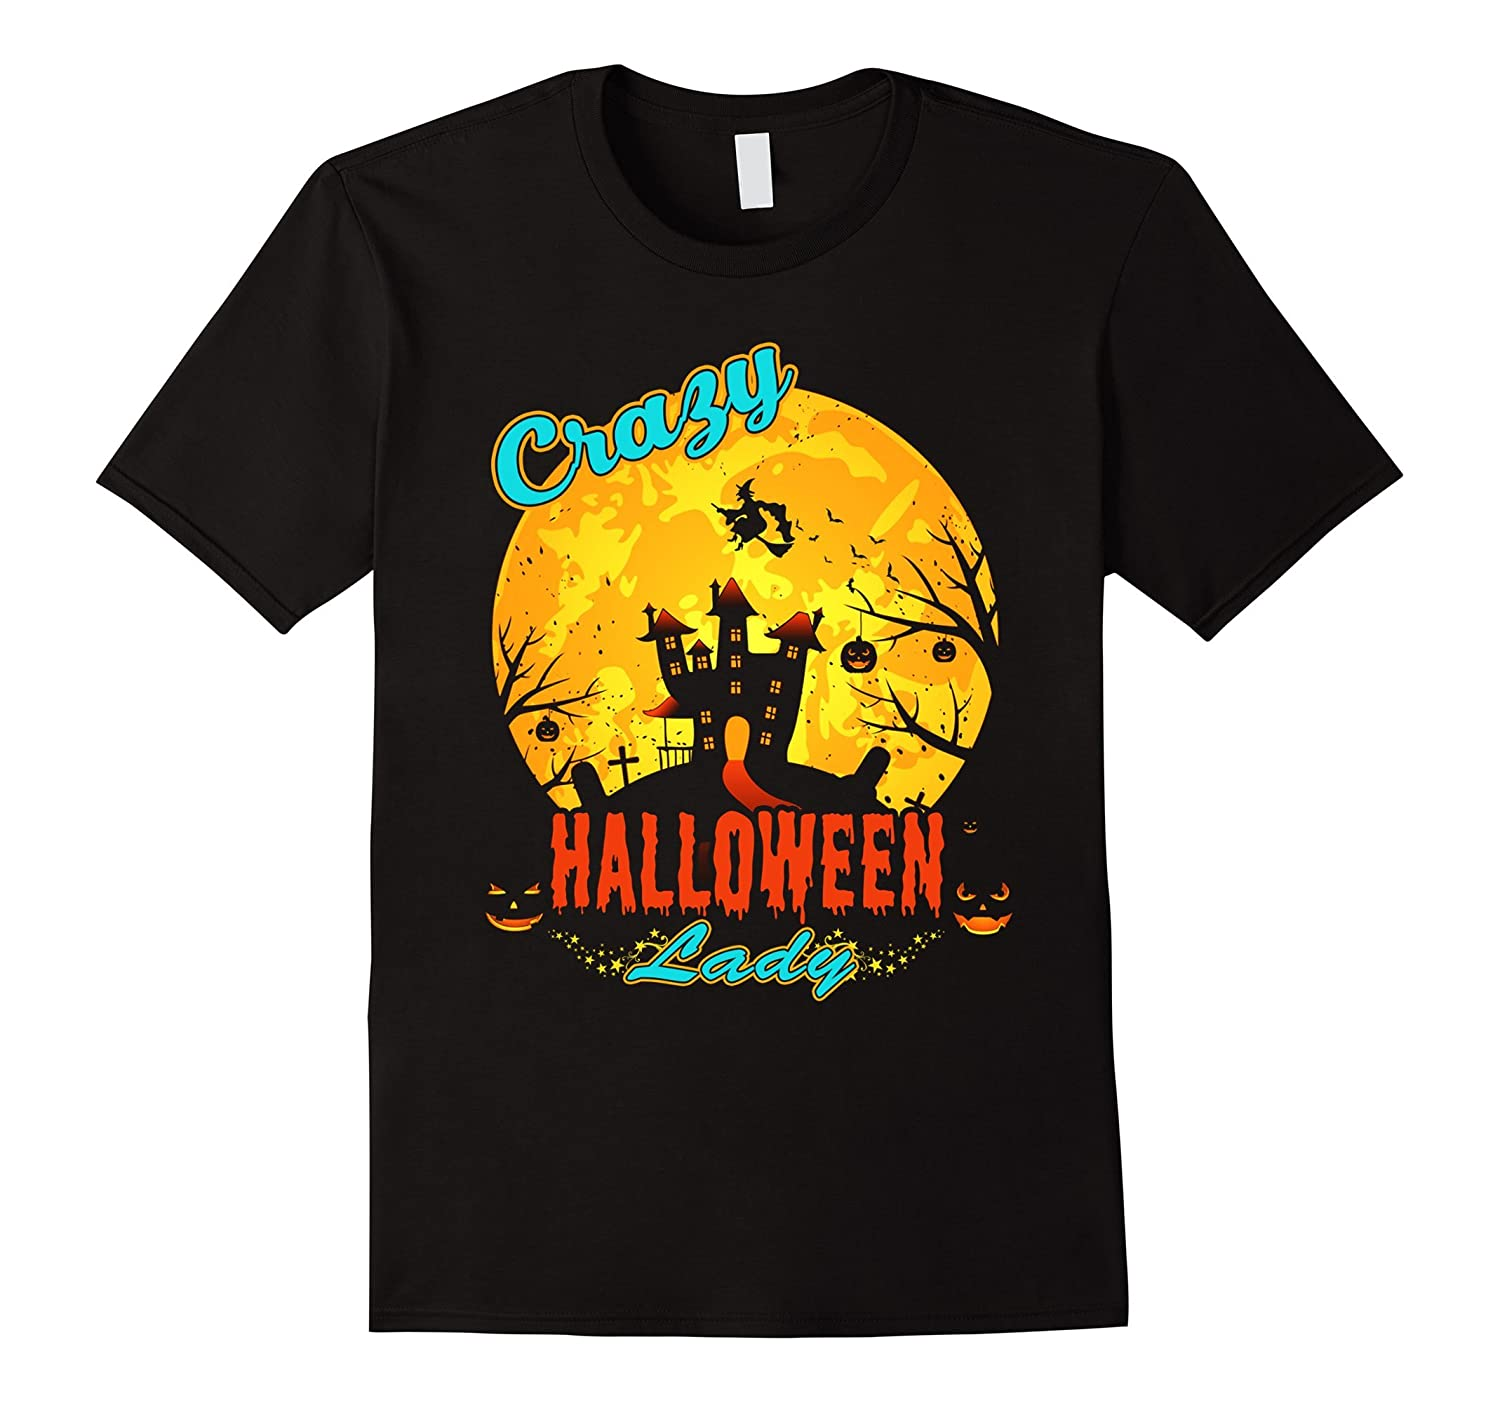 Crazy Halloween Decorations: Crazy Halloween Lady T-Shirt Costumes For Women Girl Party